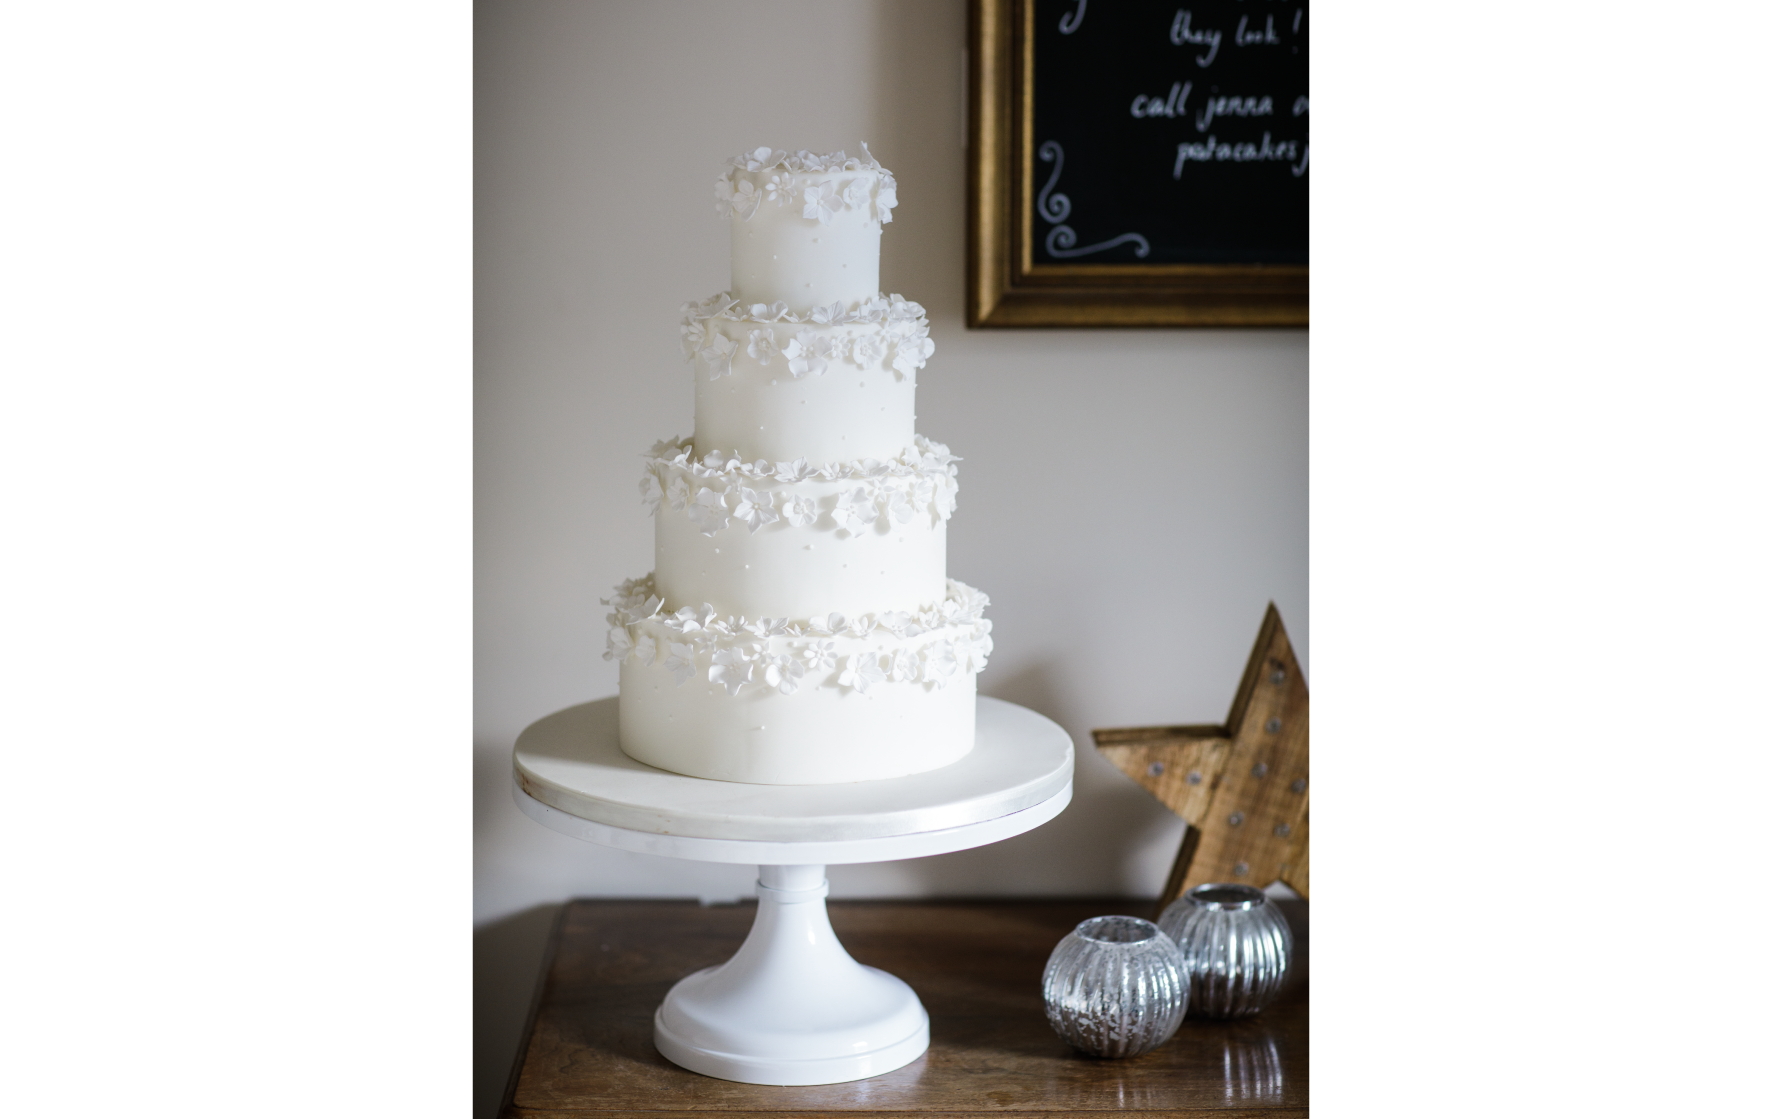 White Sugar Flower Wedding Cake - Pat a Cakes Jersey